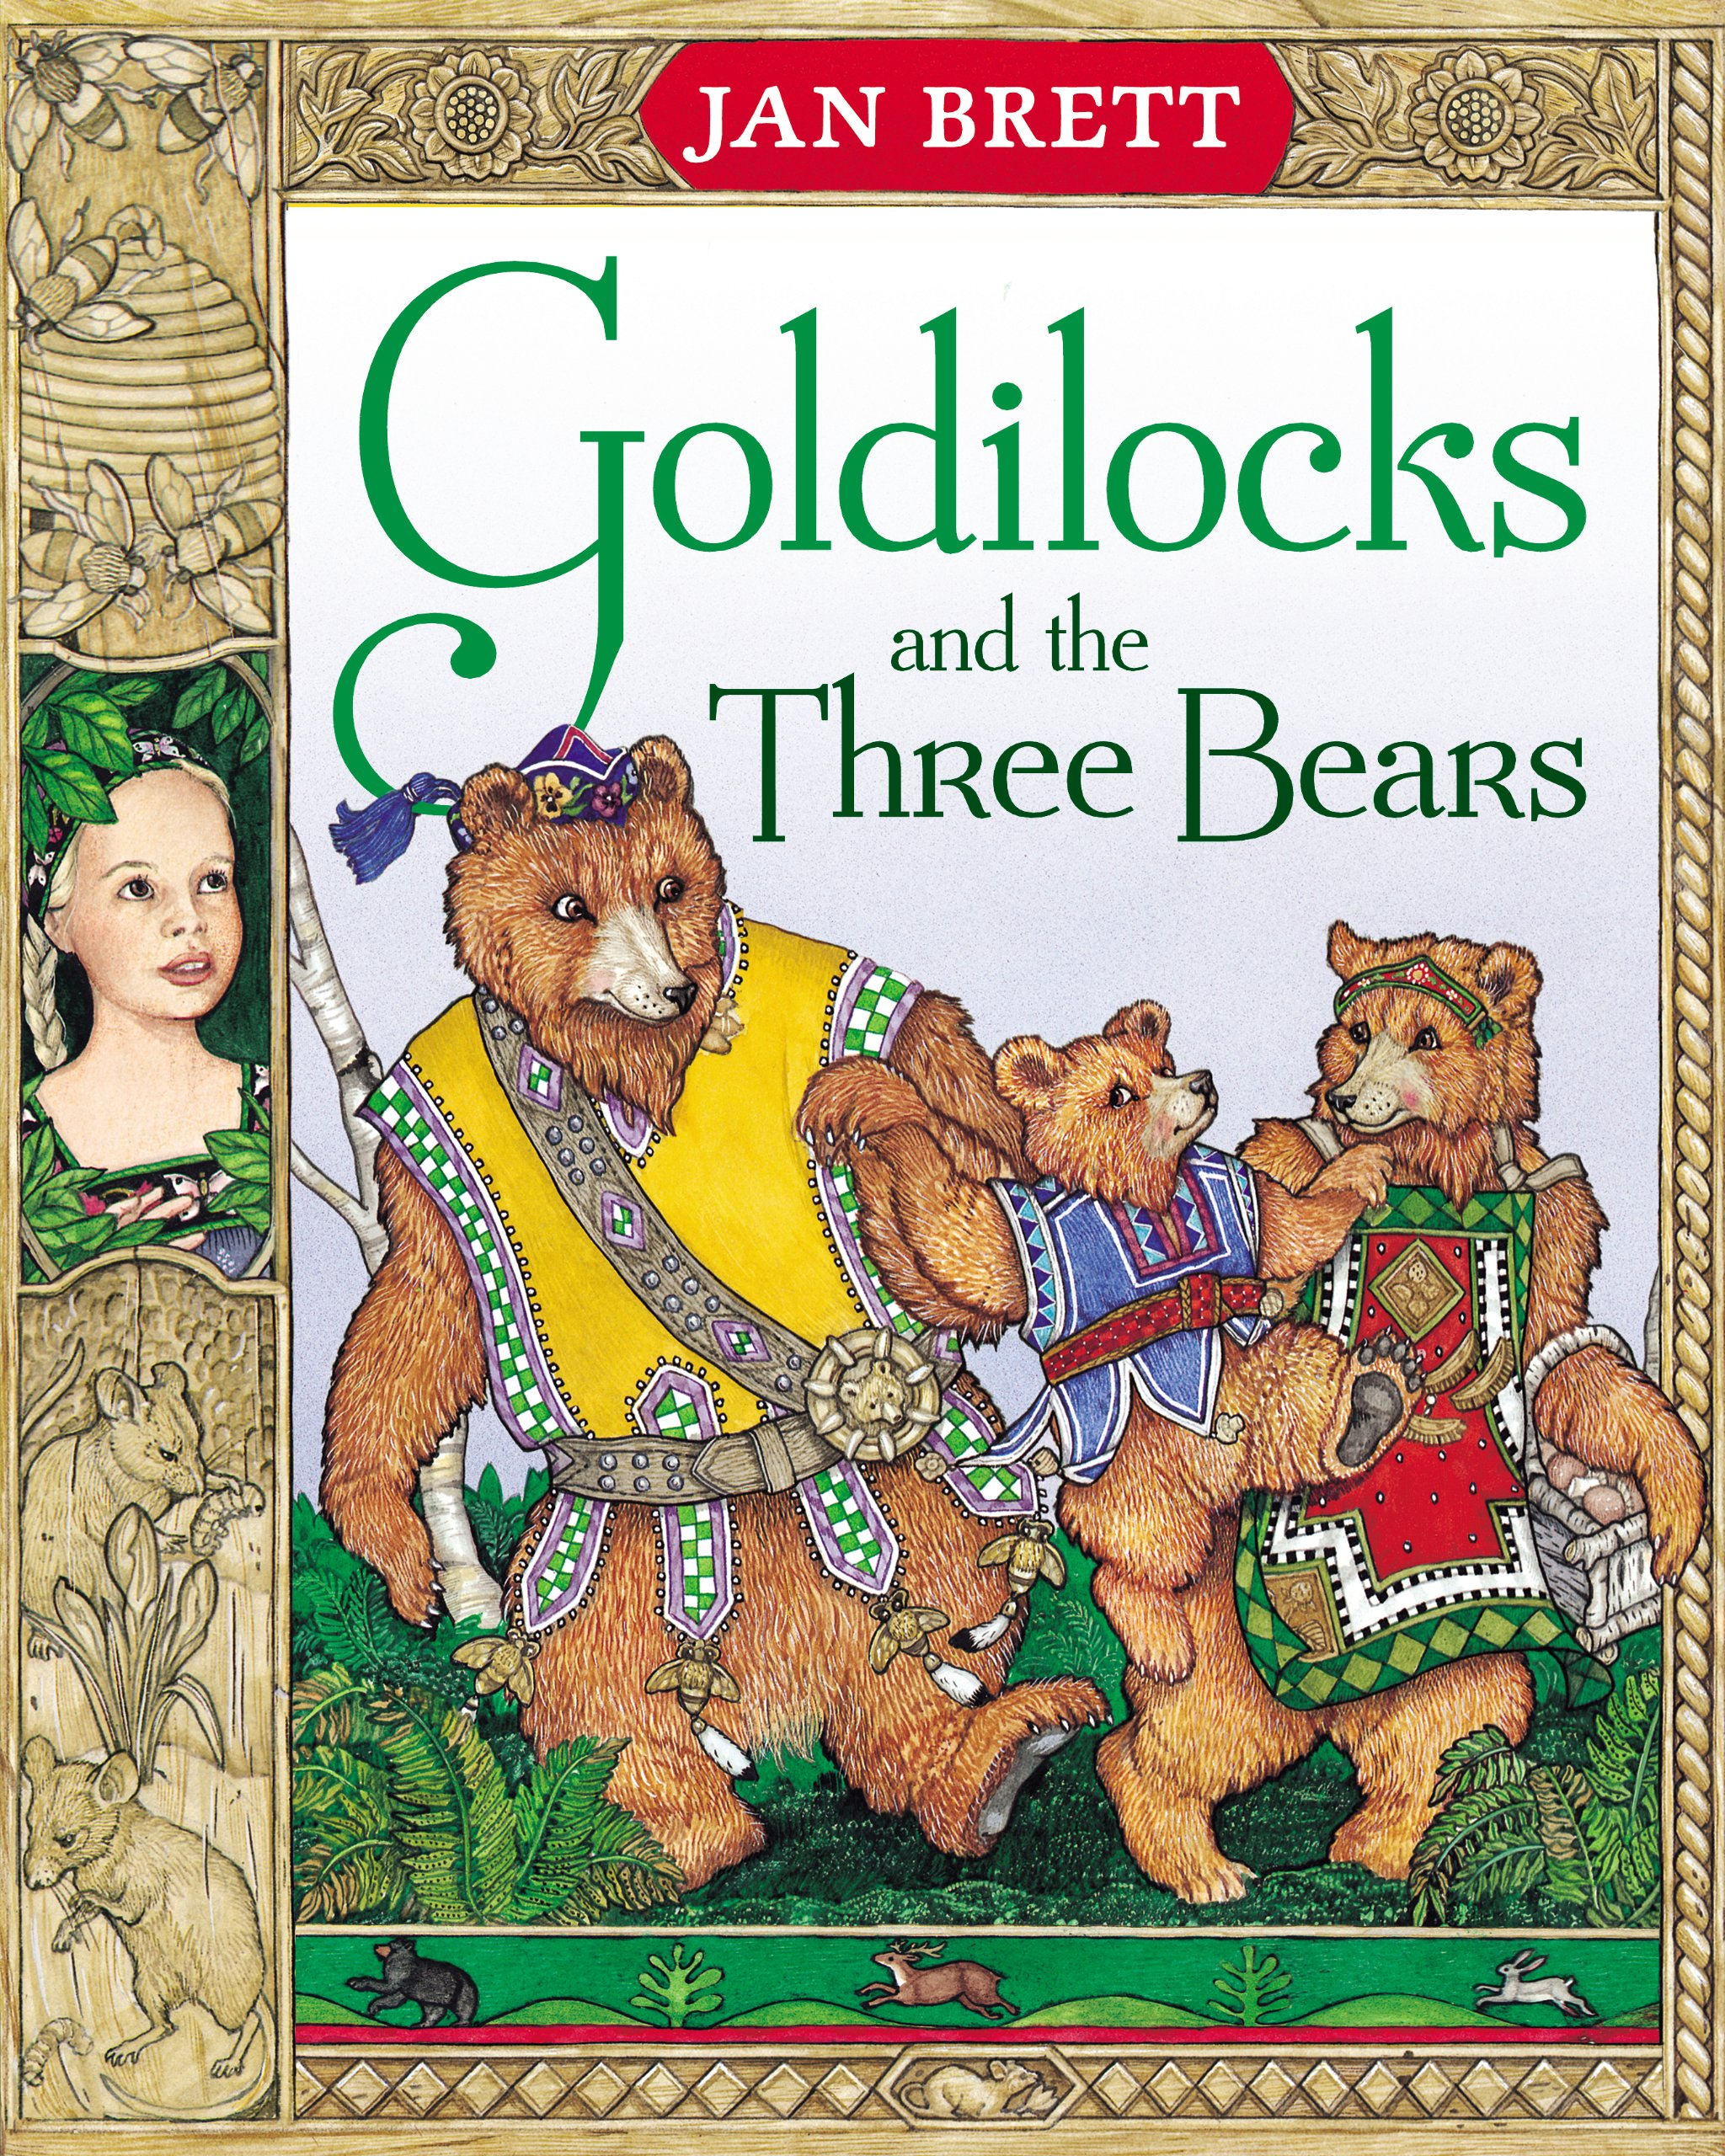 Uncategorized And The Three Bears goldilocks and the three bears jan brett 9780399220333 amazon com books